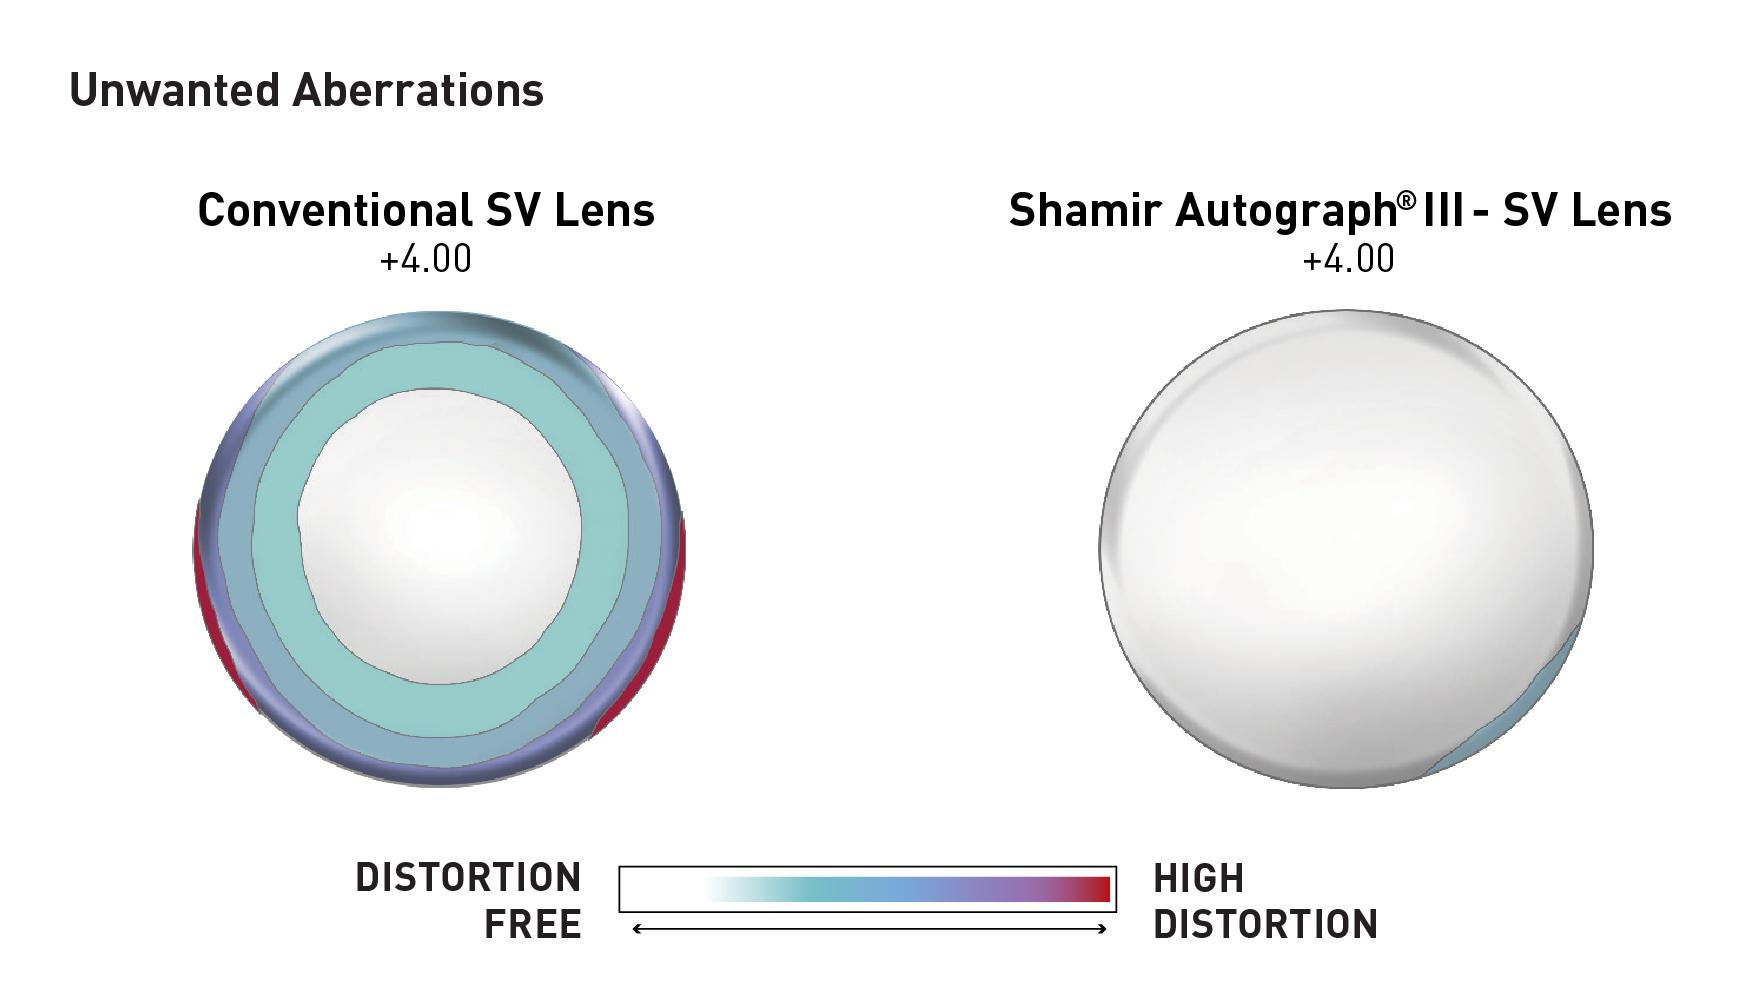 This image shows the technology used in a digital spectacle lens.